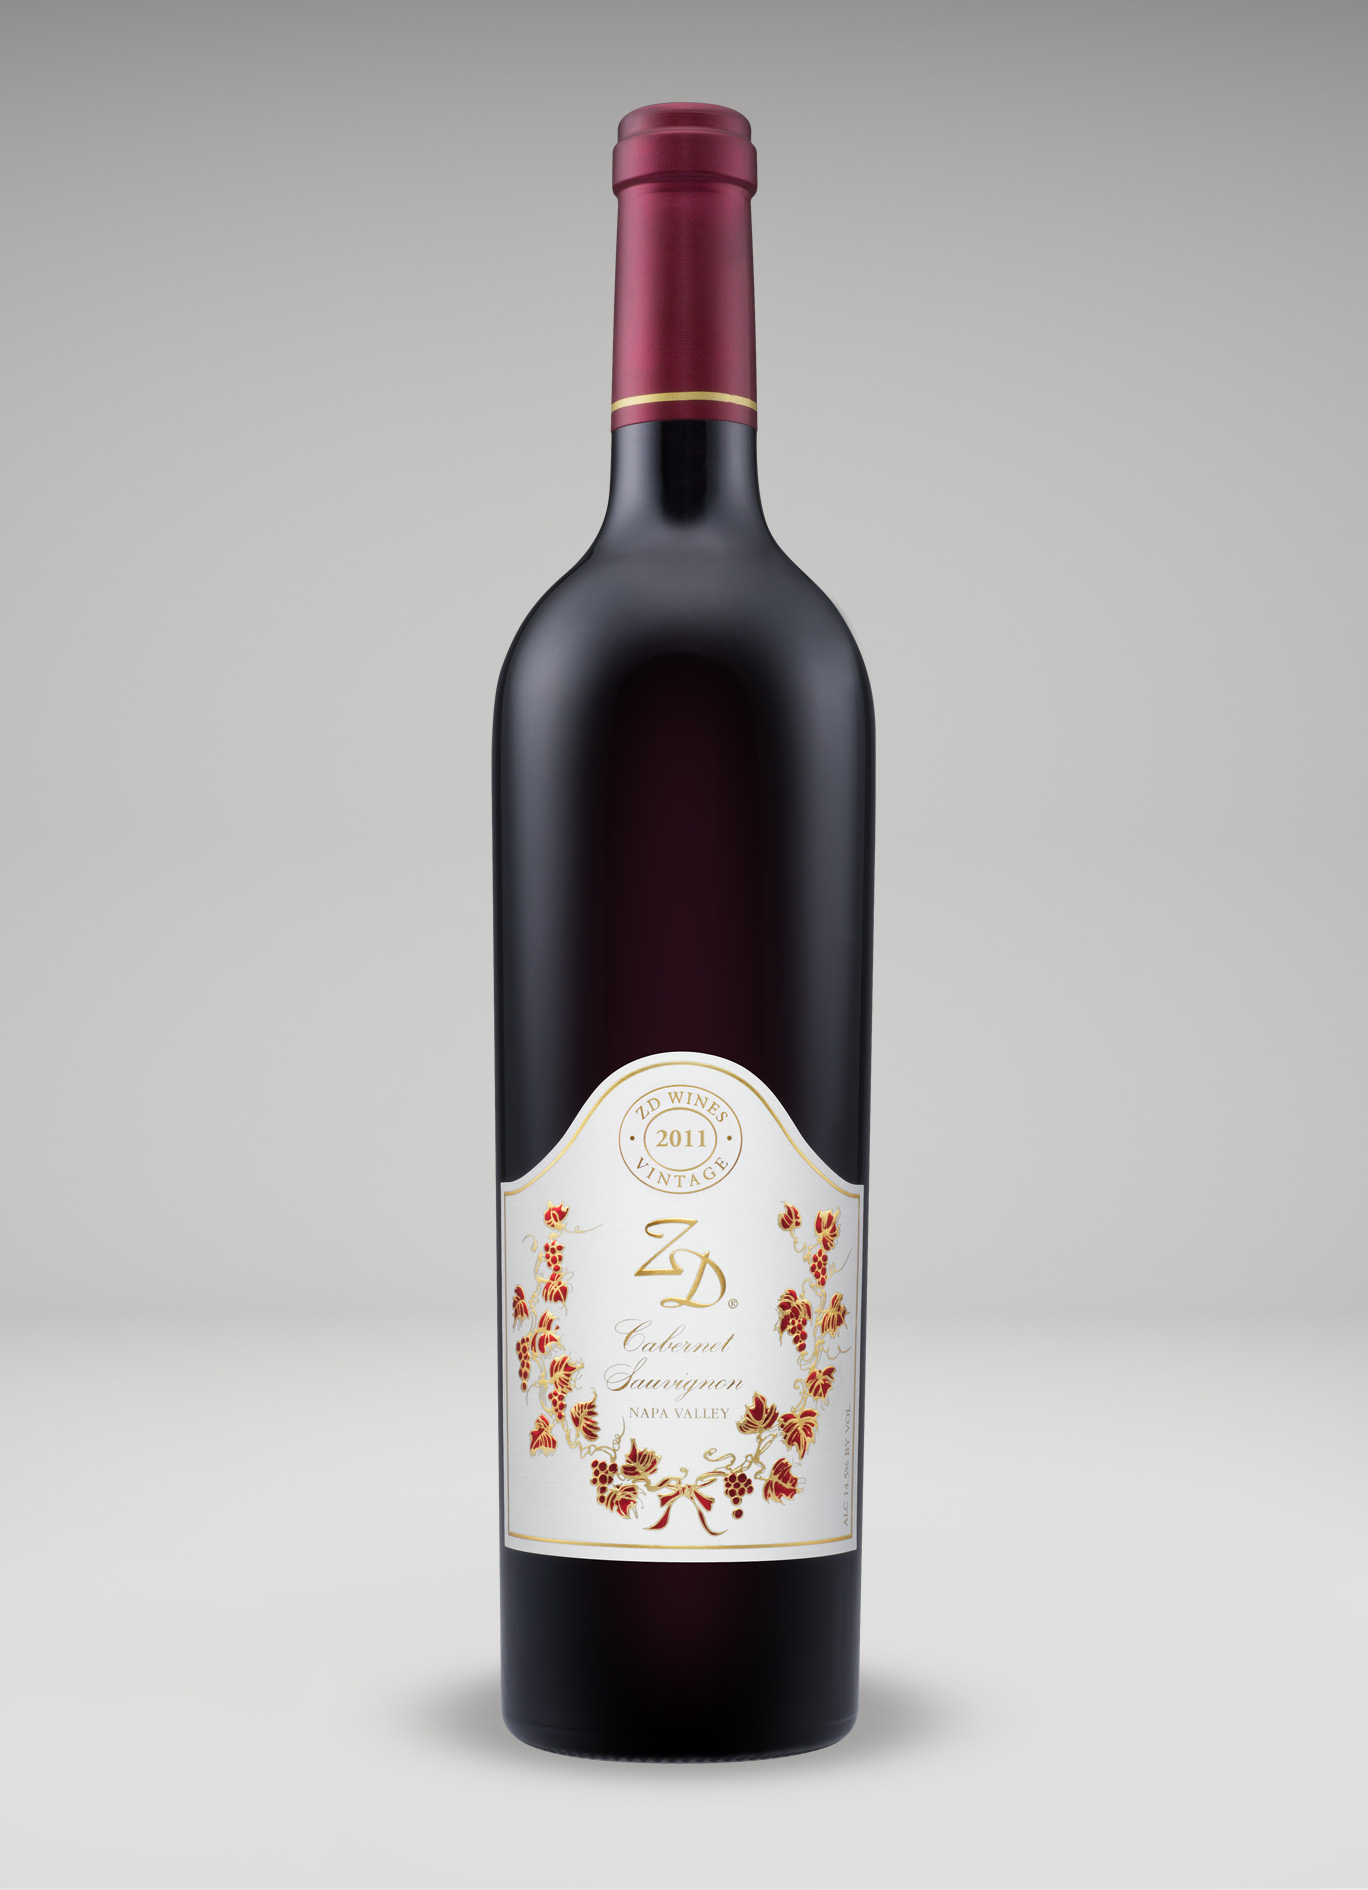 A bottle of 2011 Cabernet Sauvignon